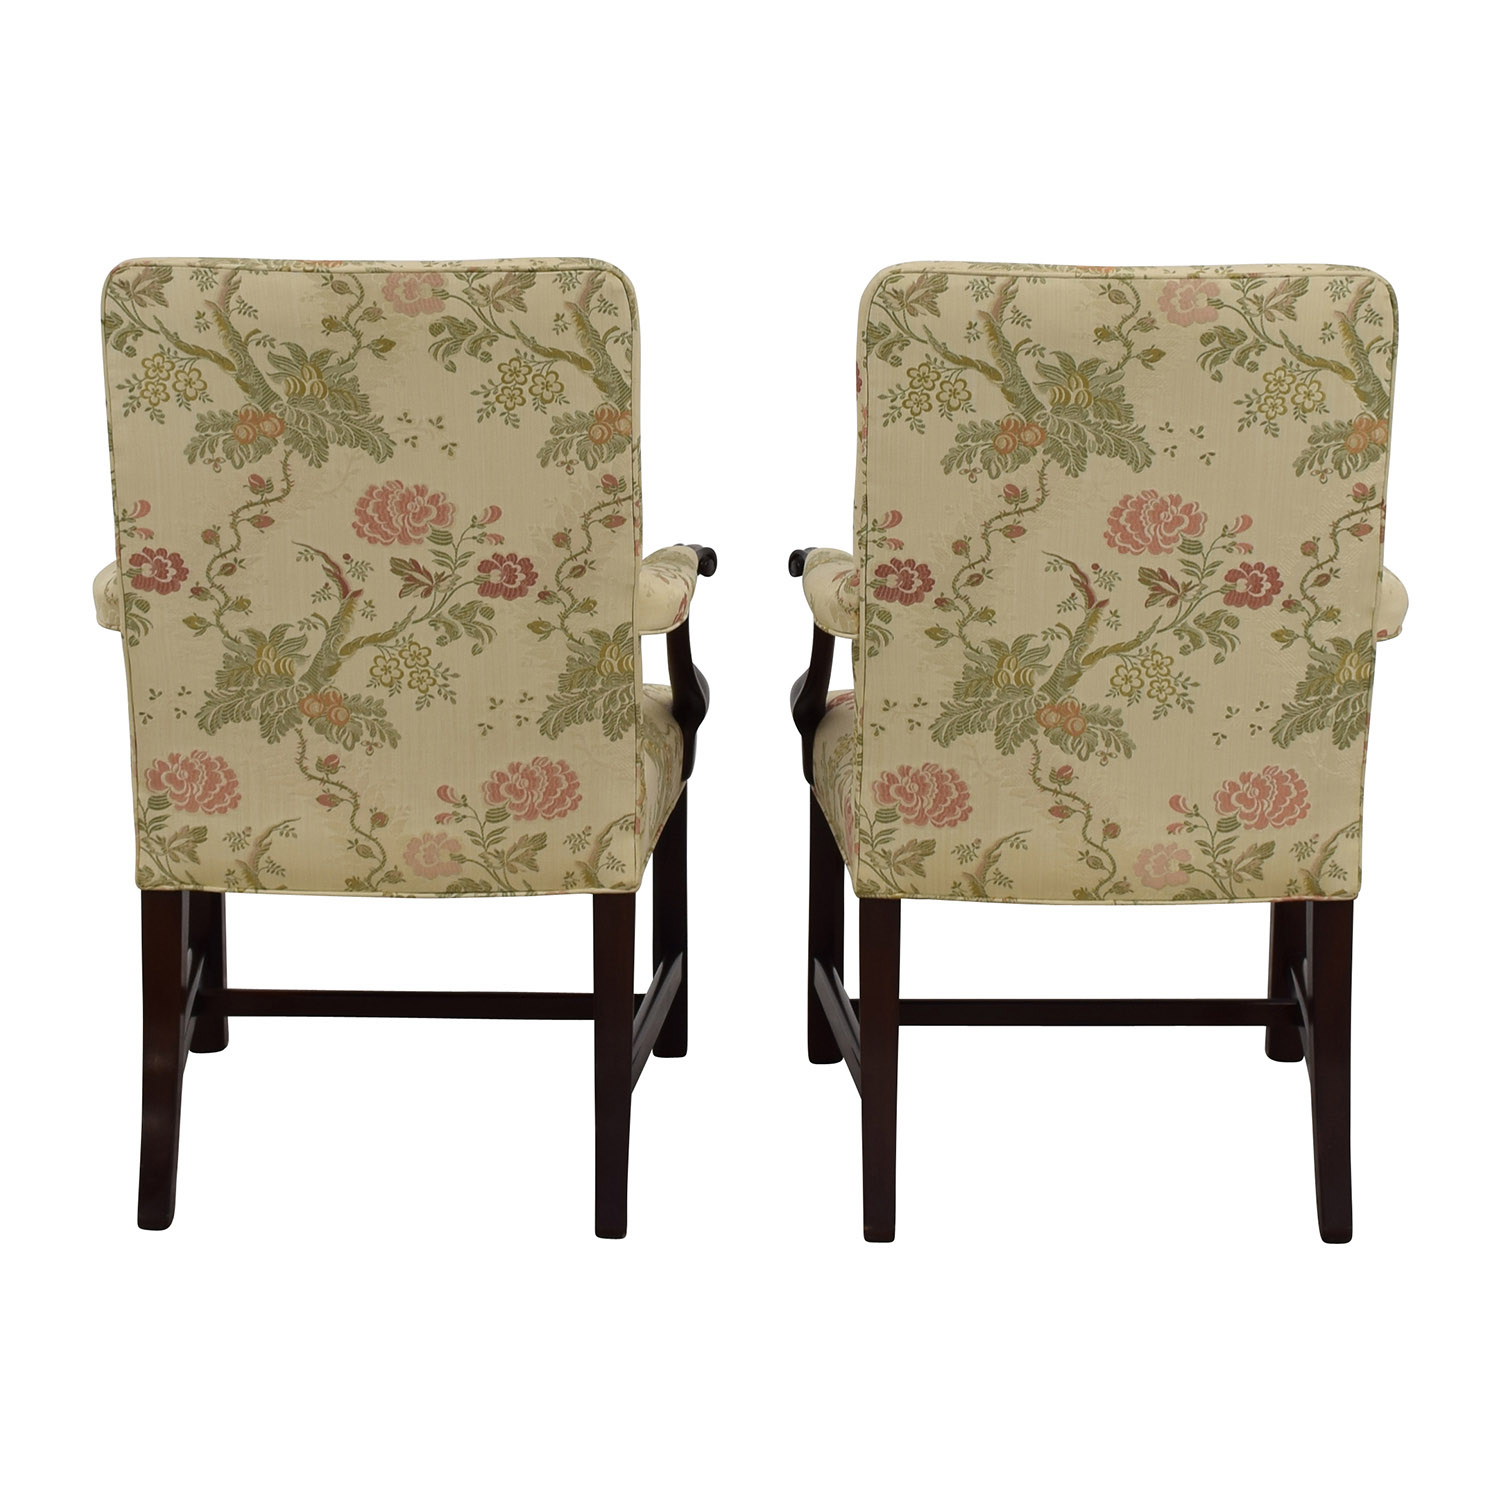 Traditional Upholstered Arm Chair, Set of Two on sale